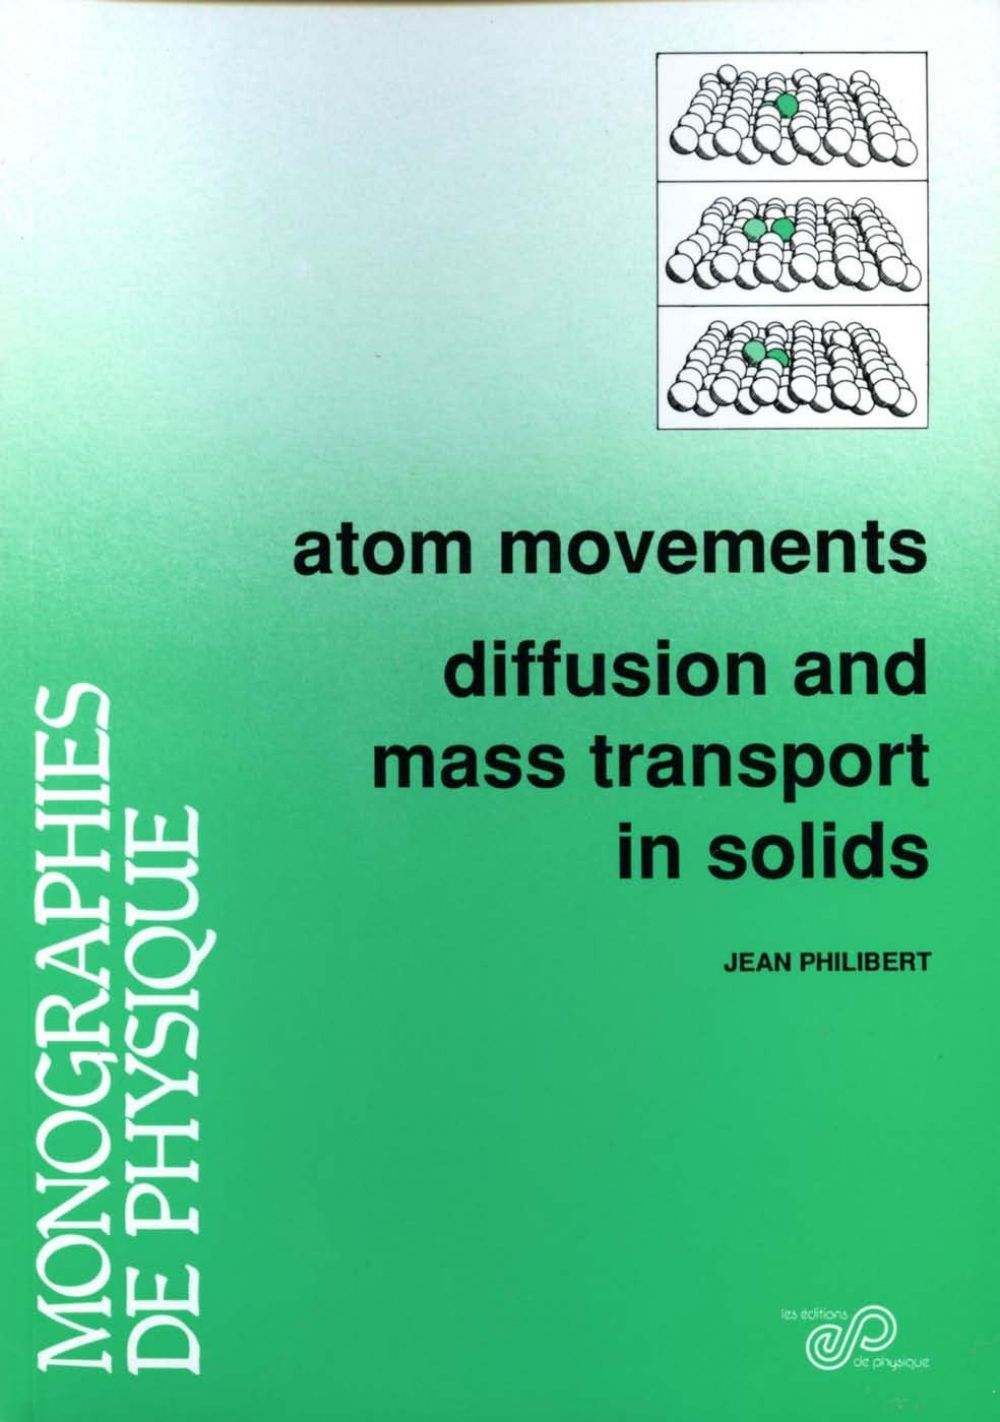 Atom movements - Diffusion and mass transport in solids